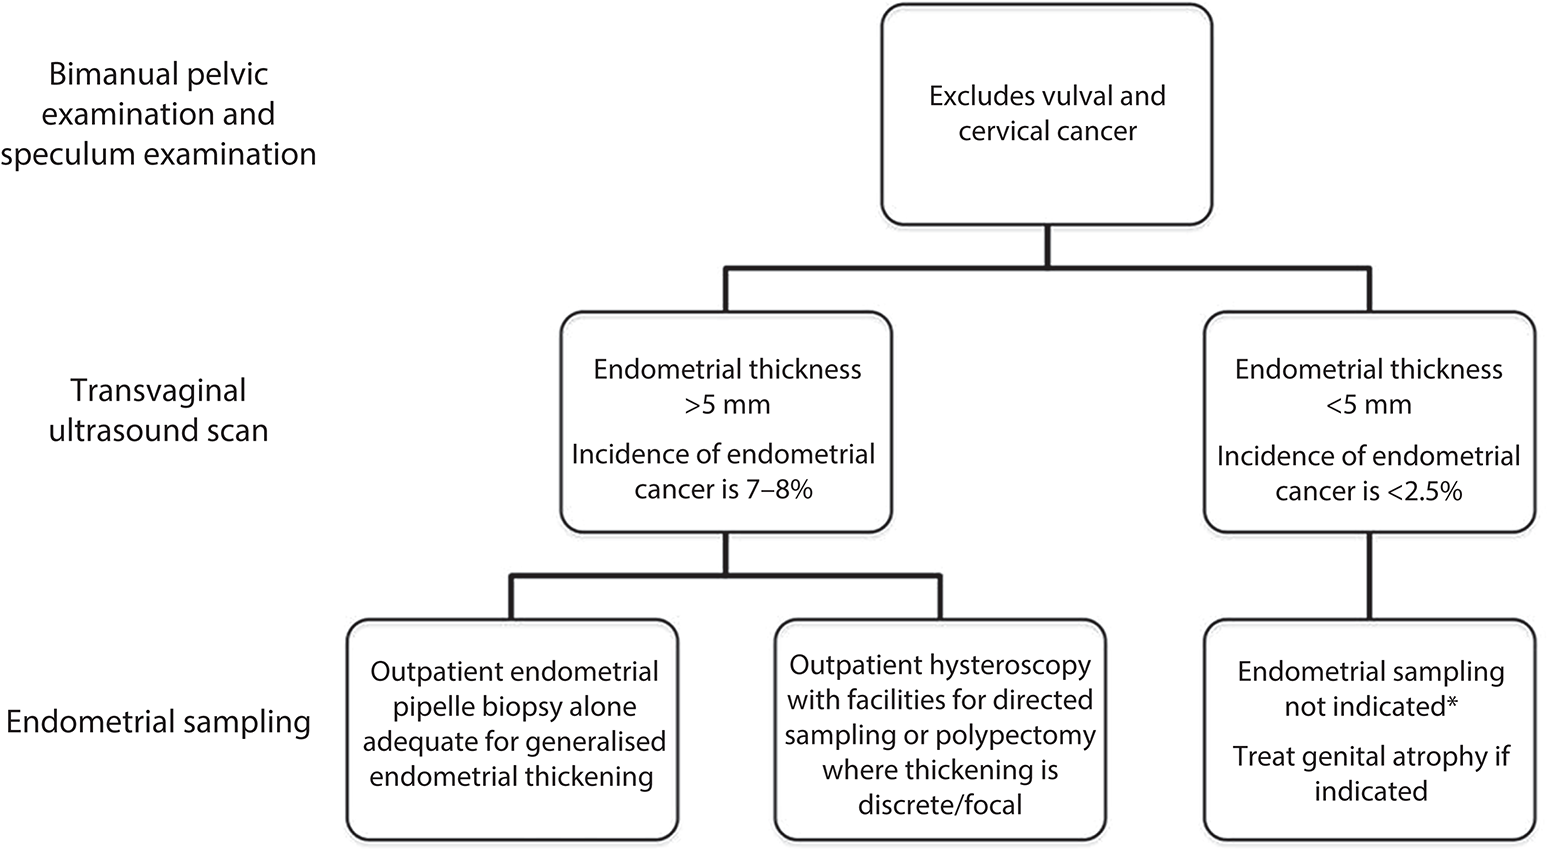 Endometrial cancer diagnosis guidelines. Cargado por Endometrial cancer treatment guidelines